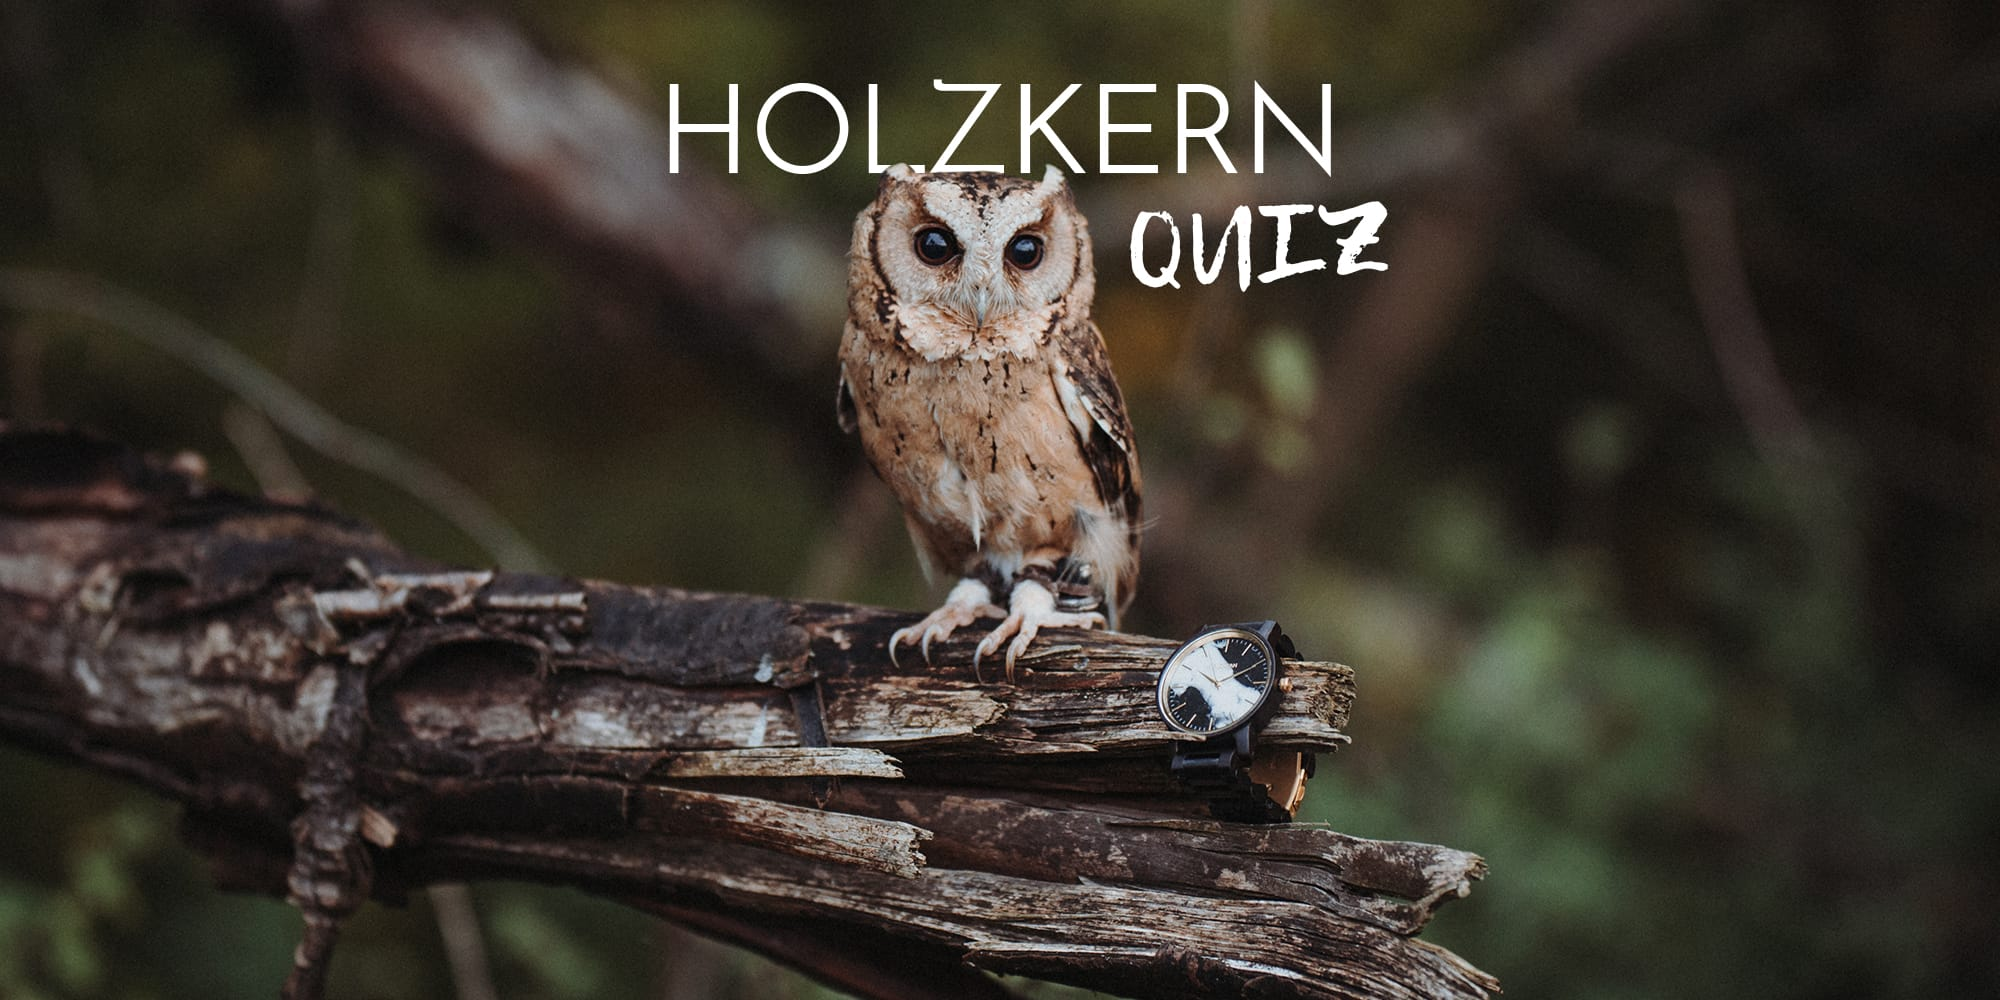 The Great Holzkern Owl Quiz